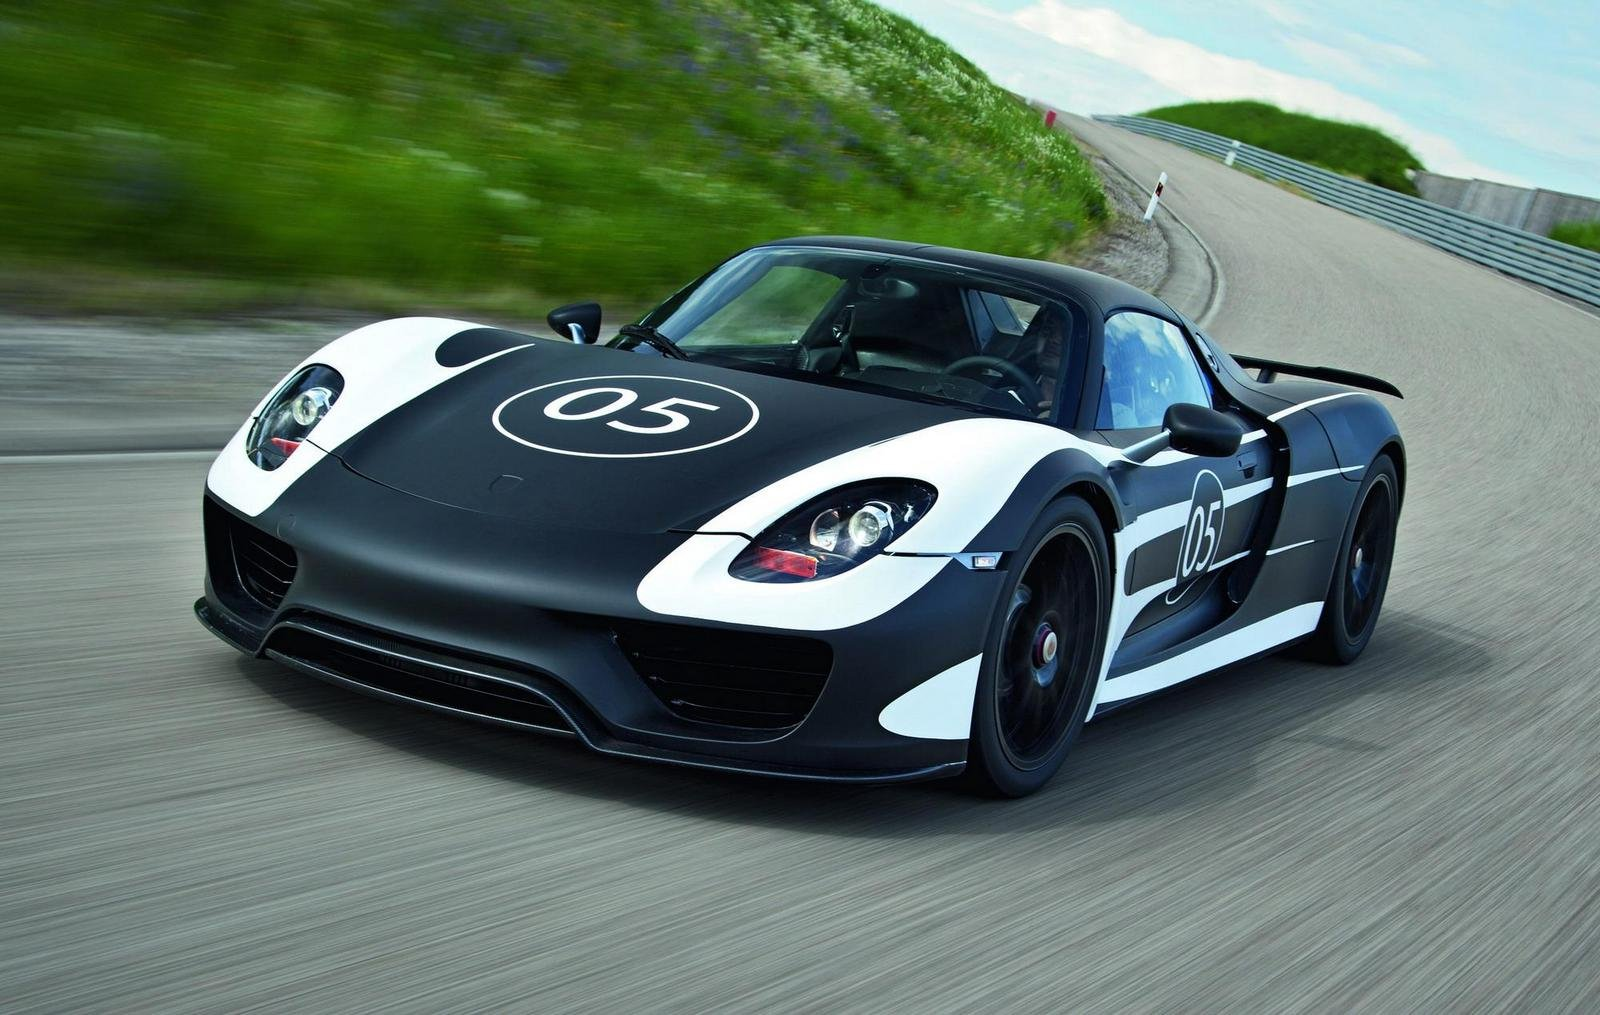 2014 porsche 918 spyder picture 455340 car review. Black Bedroom Furniture Sets. Home Design Ideas